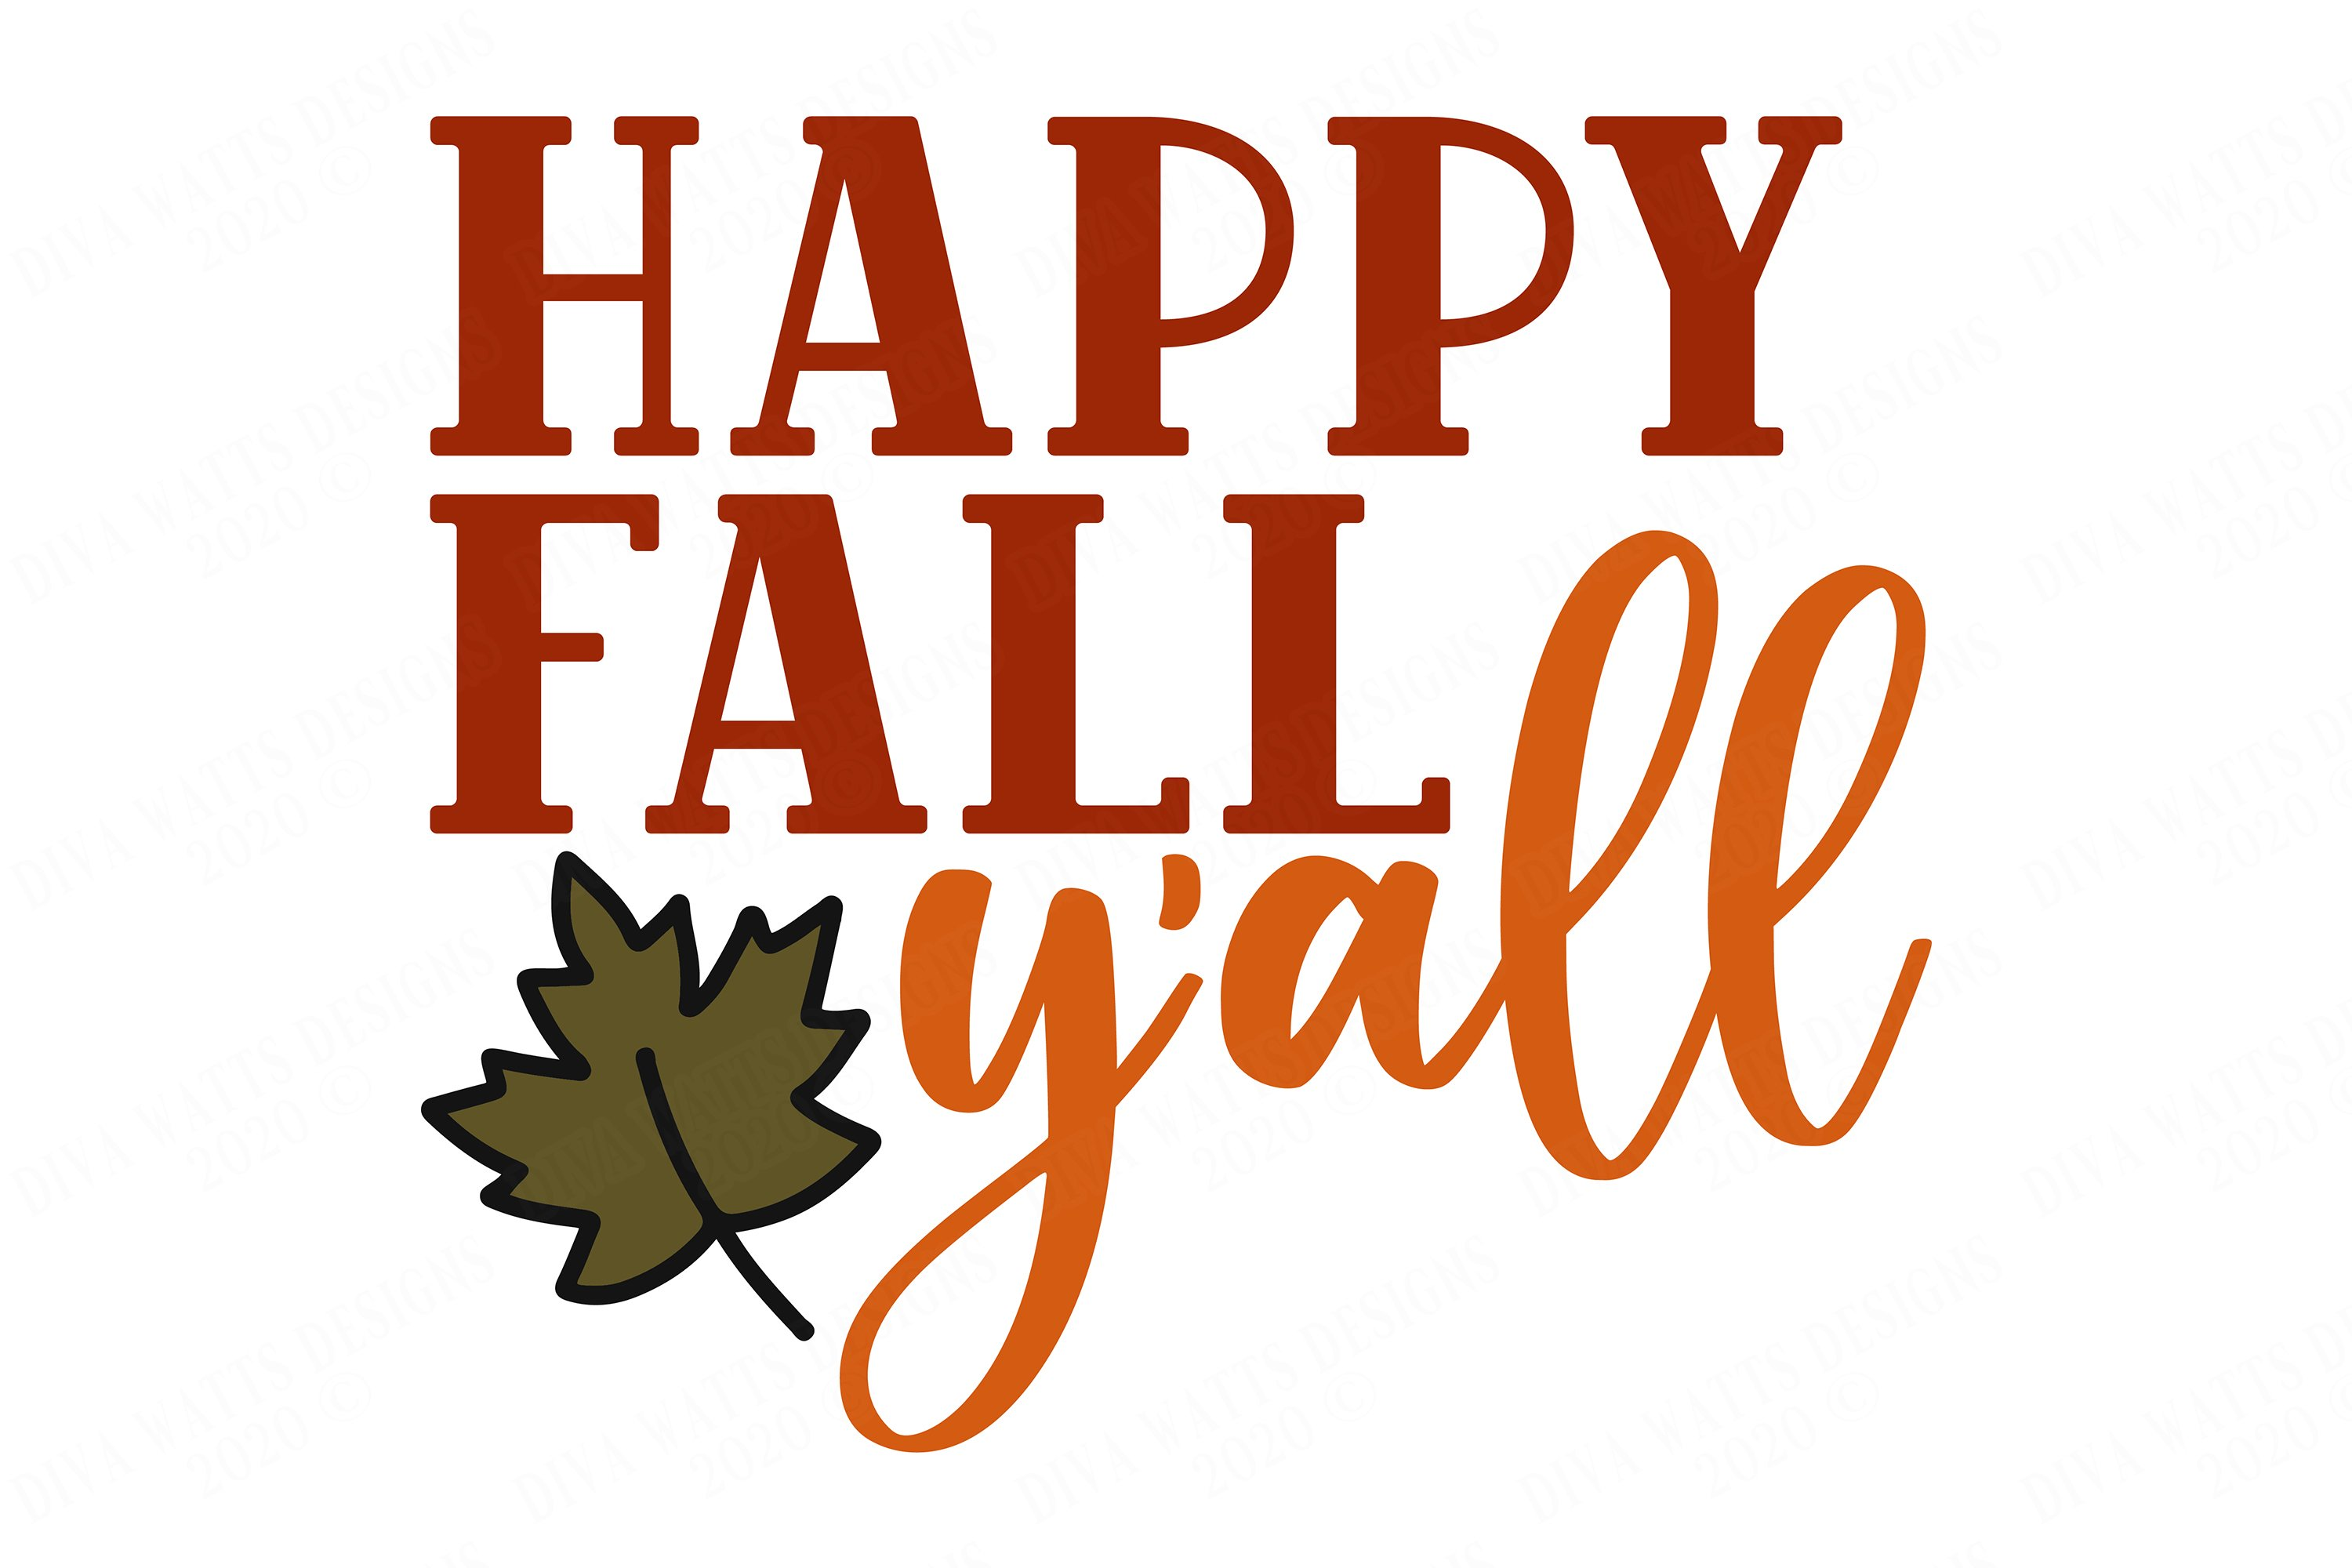 Happy Fall Y'all - Autumn Halloween Thanksgiving Design example image 2